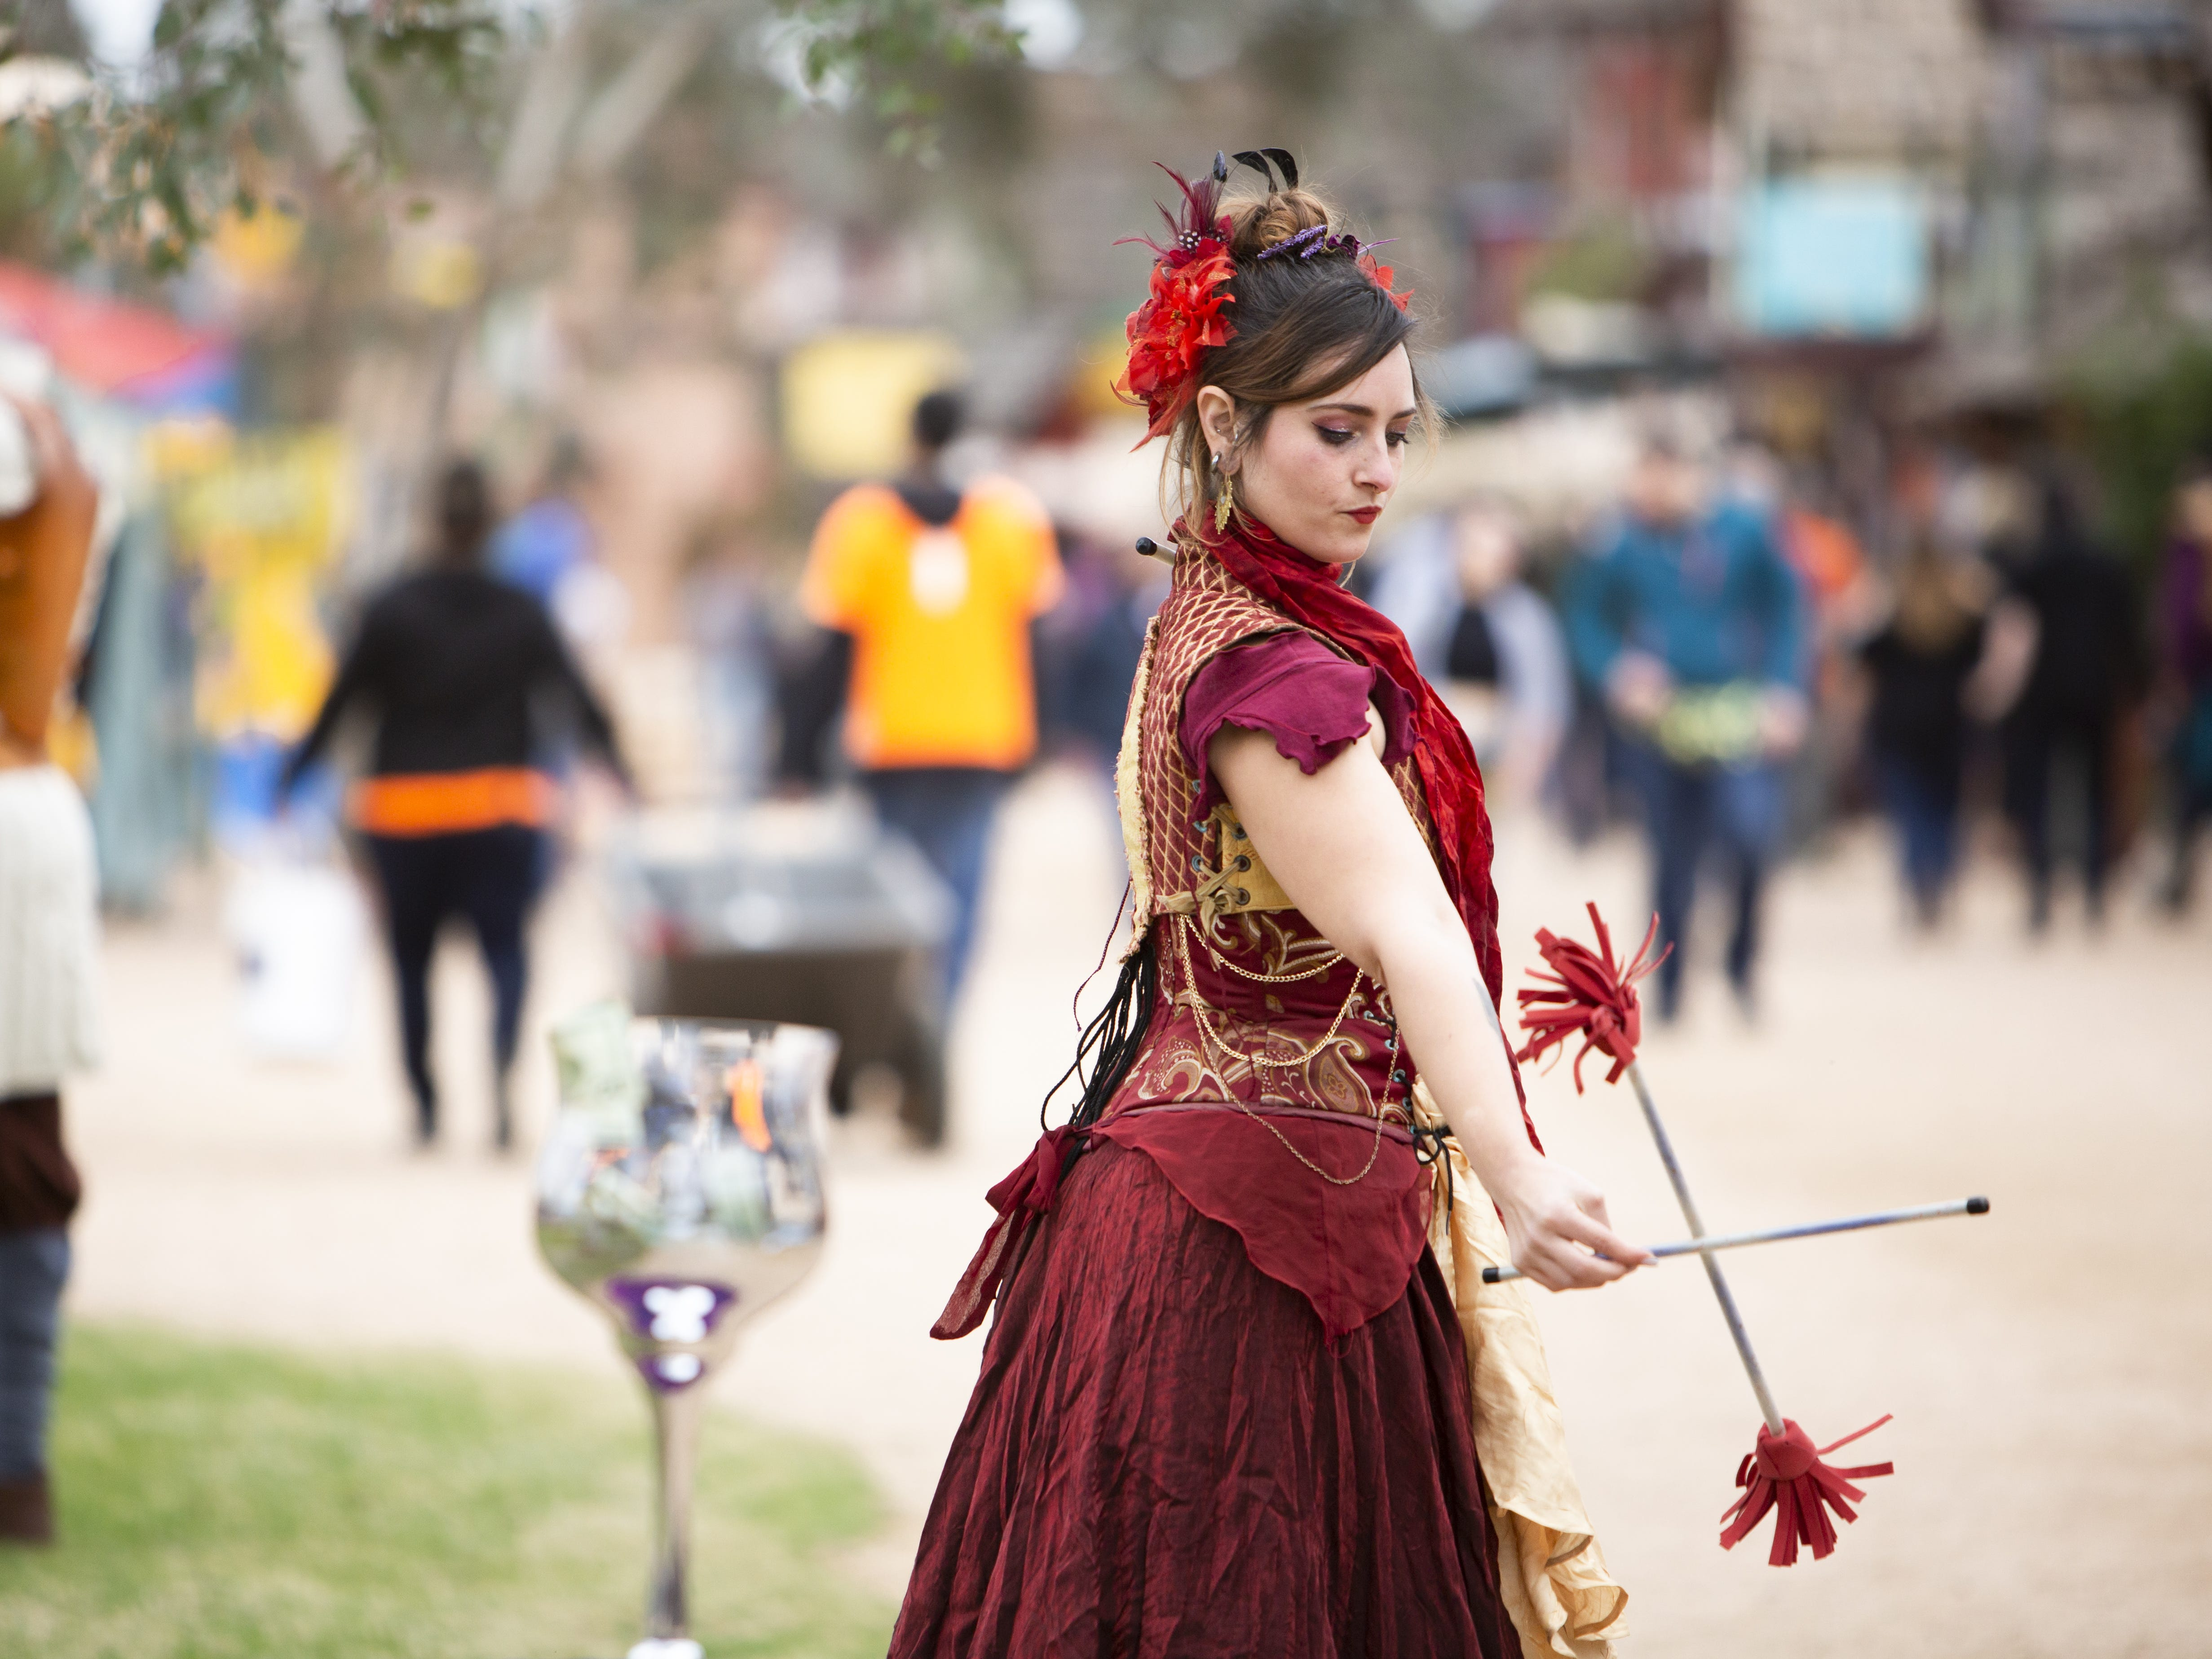 Krista Denewell performs with juggling sticks at the Arizona Renaissance Festival 2019 on Feb. 9, 2019 in Gold Canyon, Ariz.